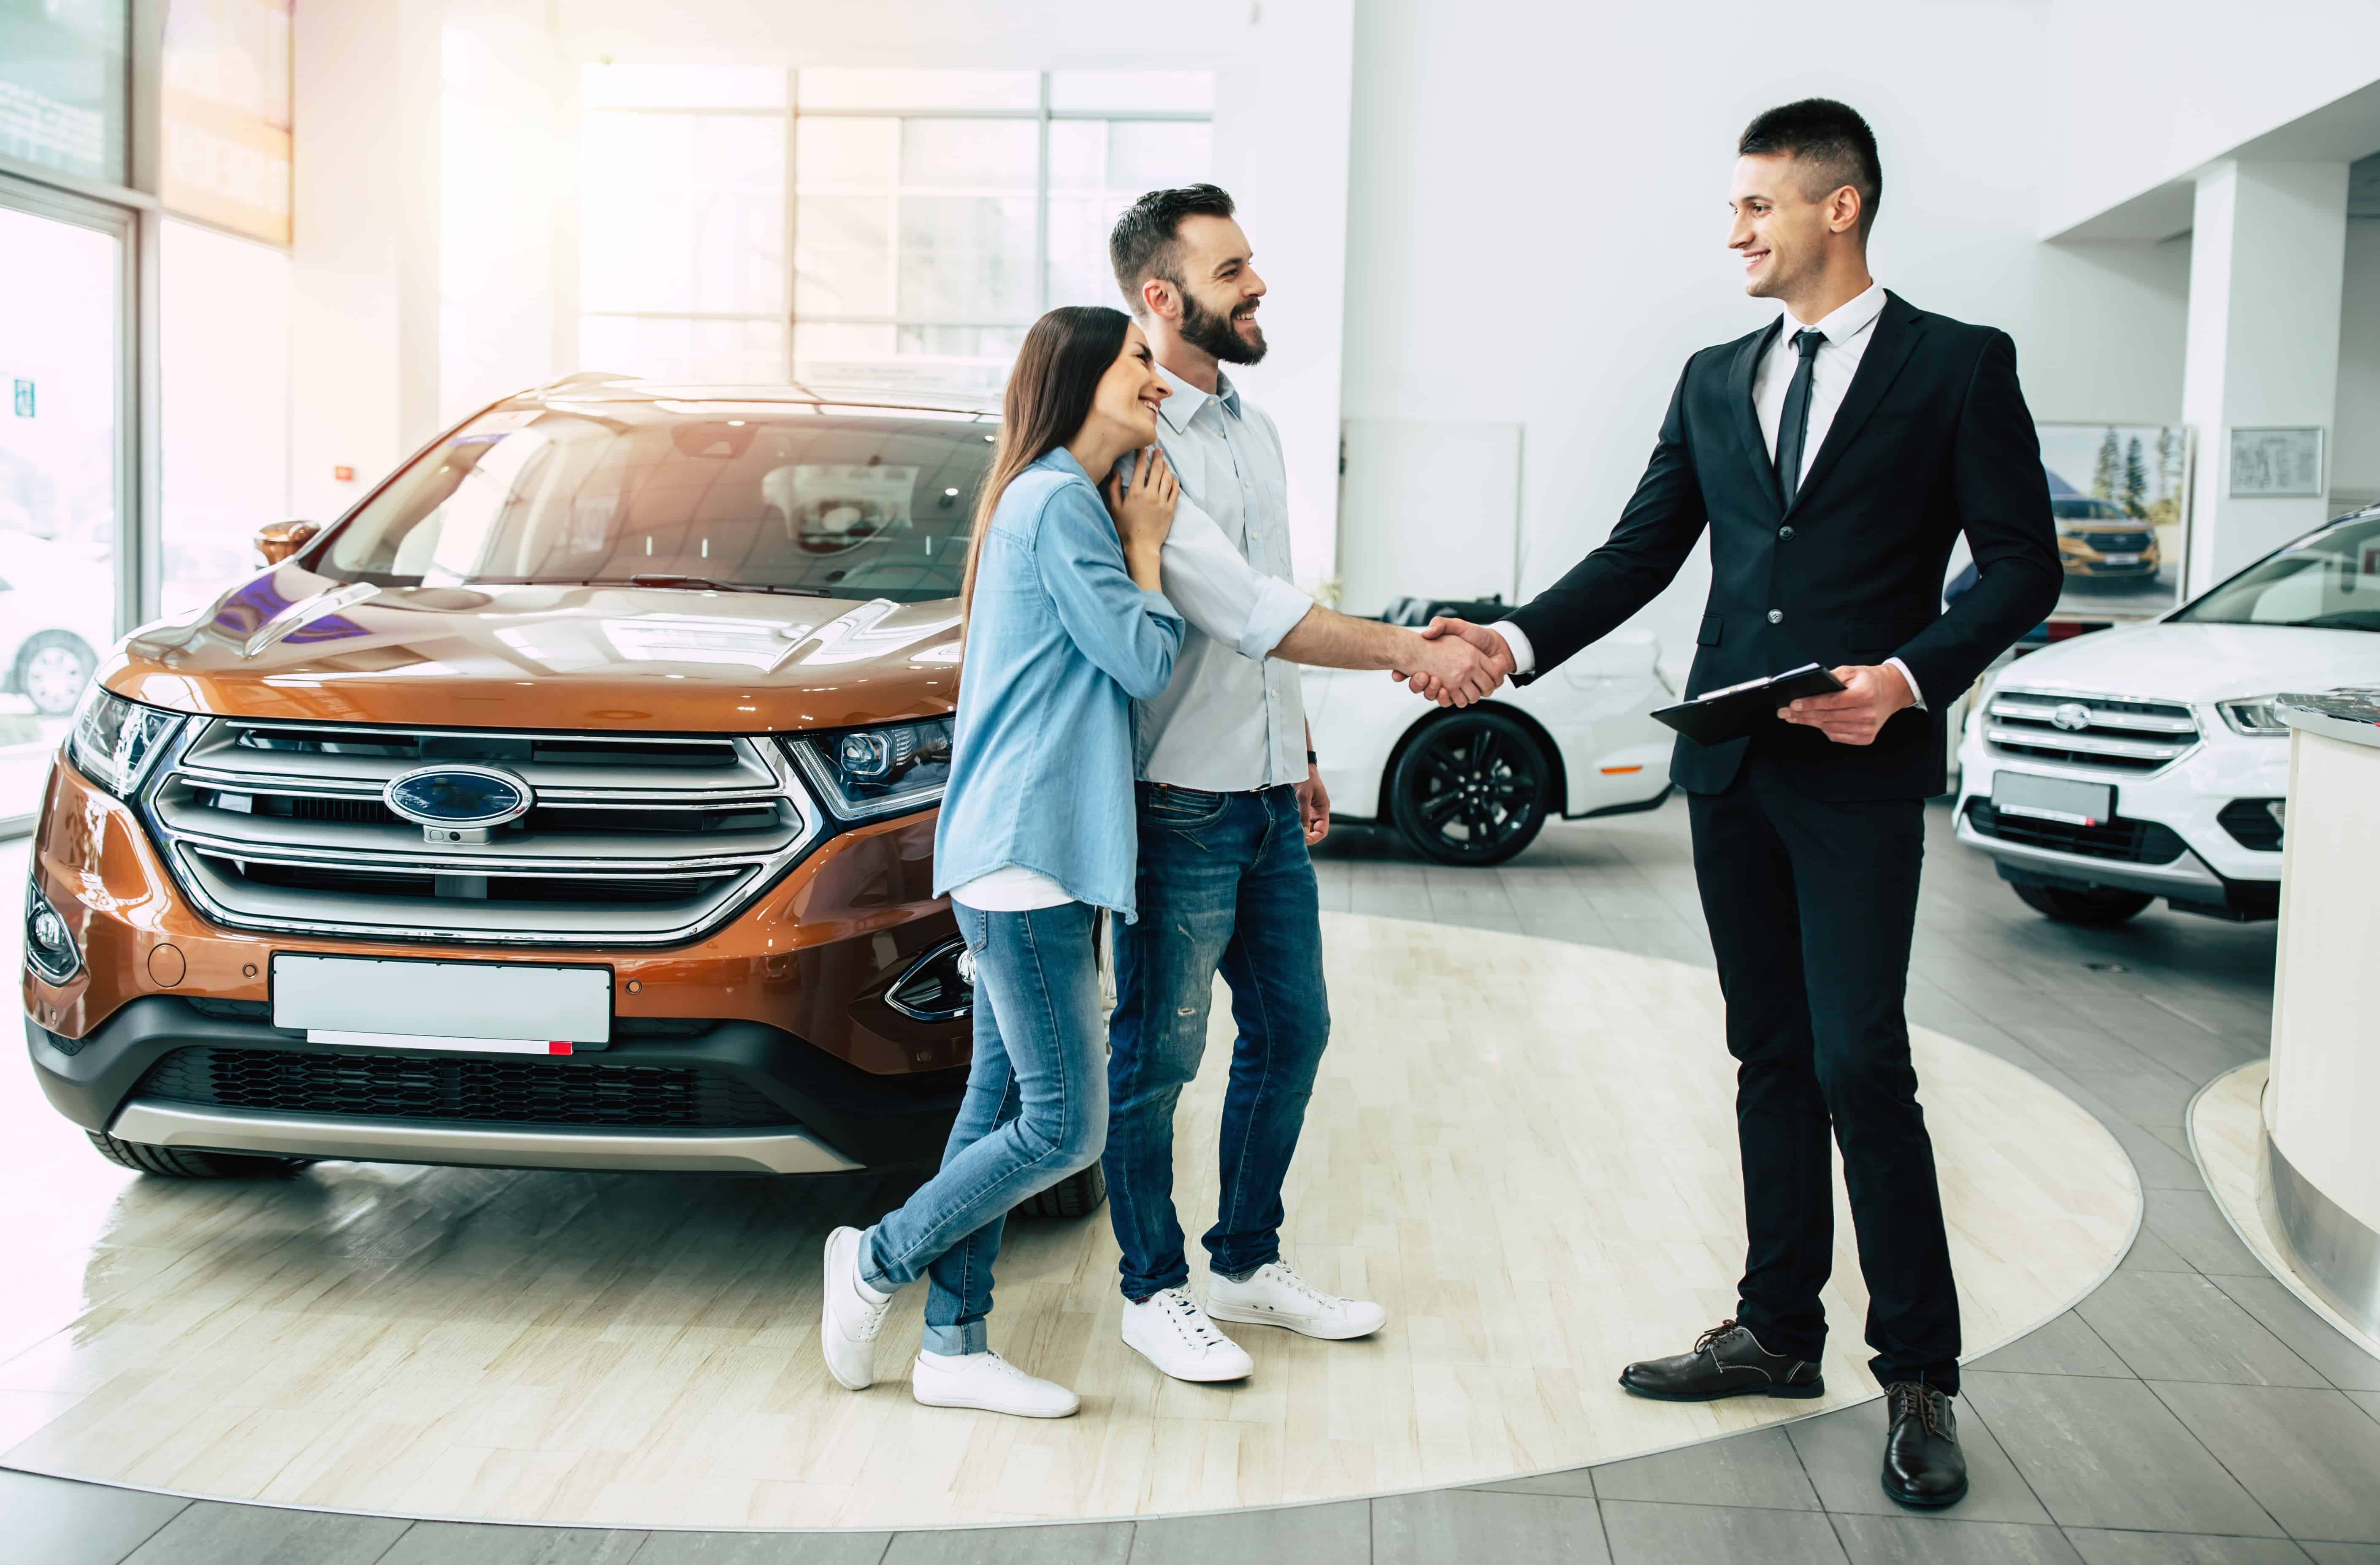 Car salesman shaking hands with a couple in the showroom in front of a suv